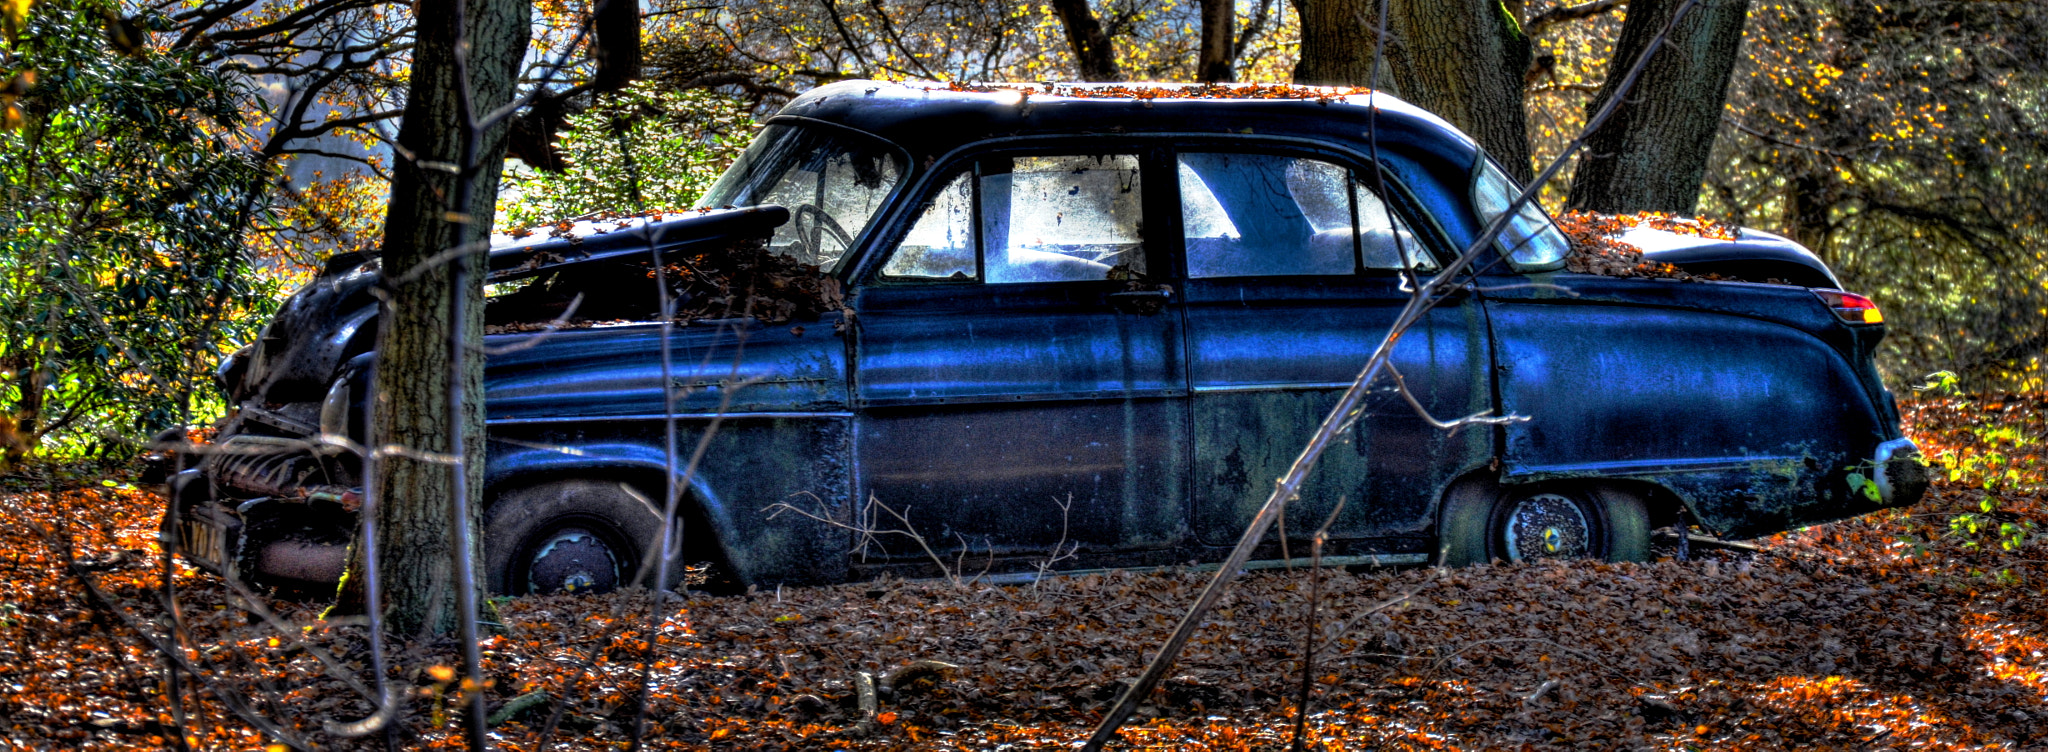 Photograph Abandoned by mark baker on 500px